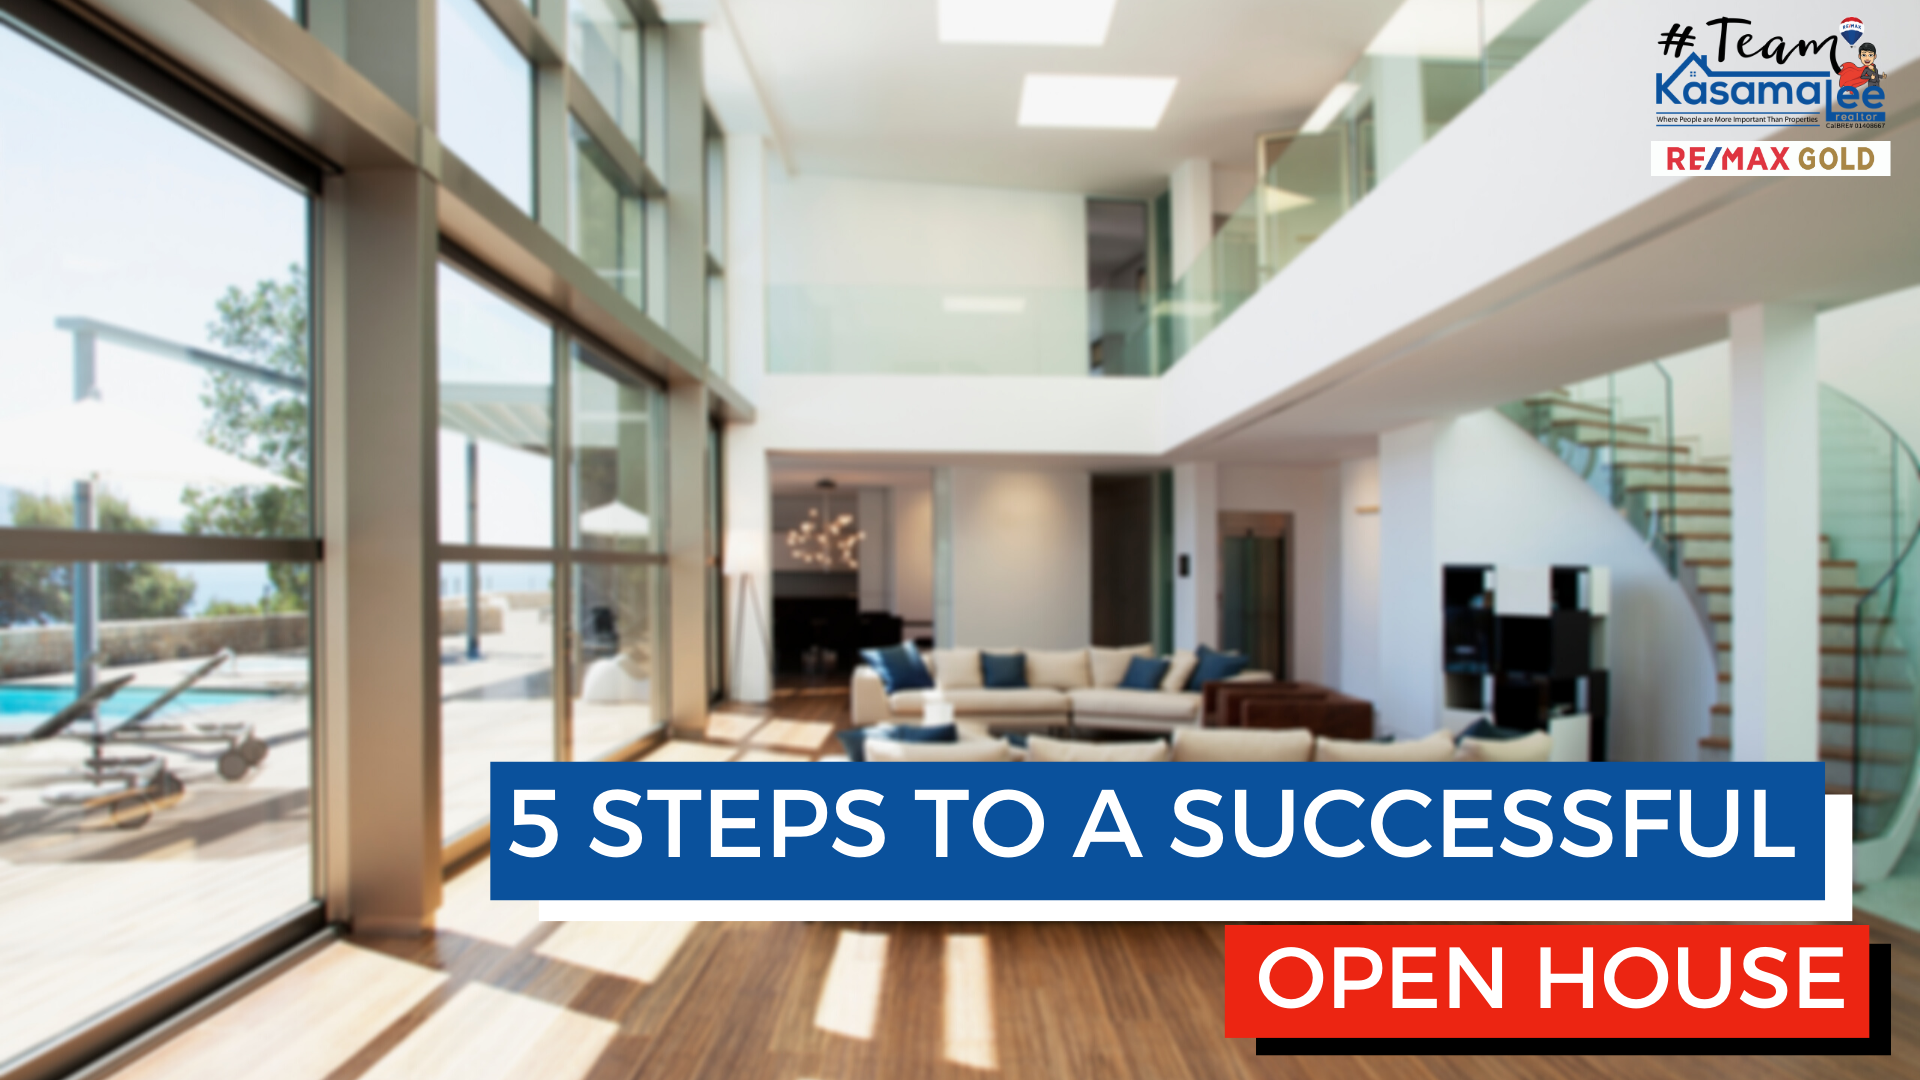 5 Steps to a Successful Open House